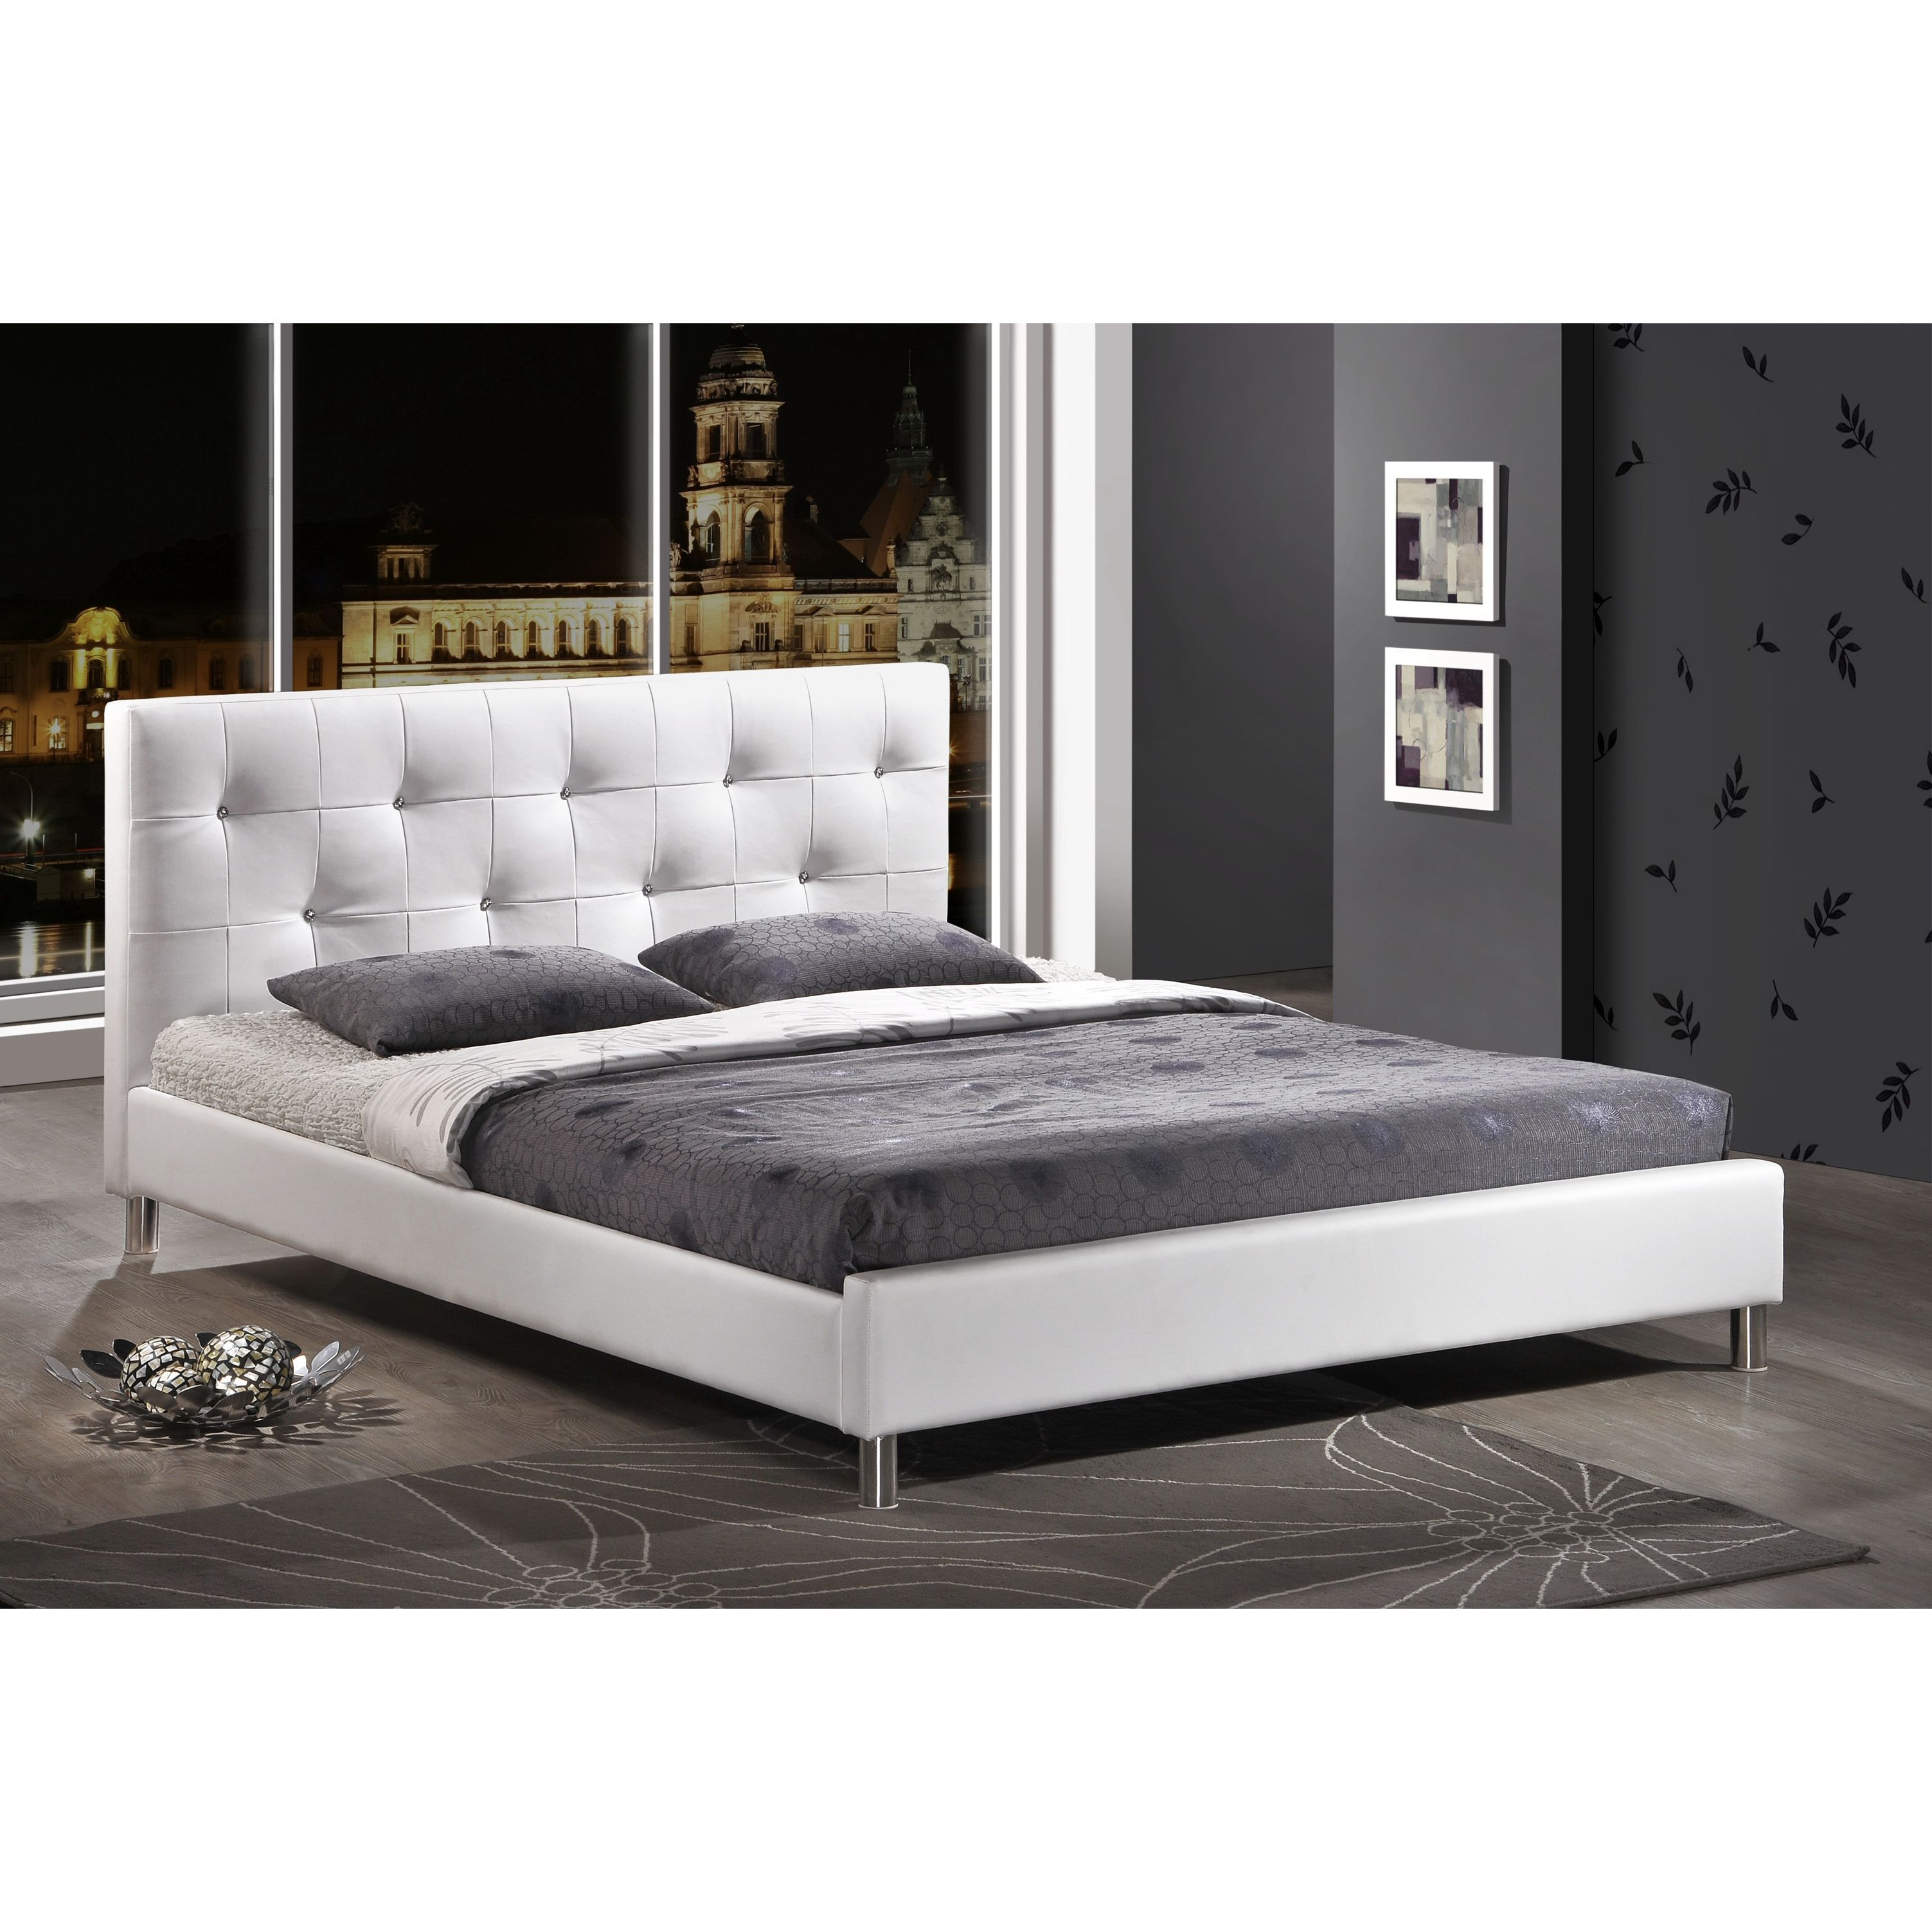 Barbara Modern Full Size Bed With Crystal Button Tufting   Overstock  Shopping   Great Deals On Beds